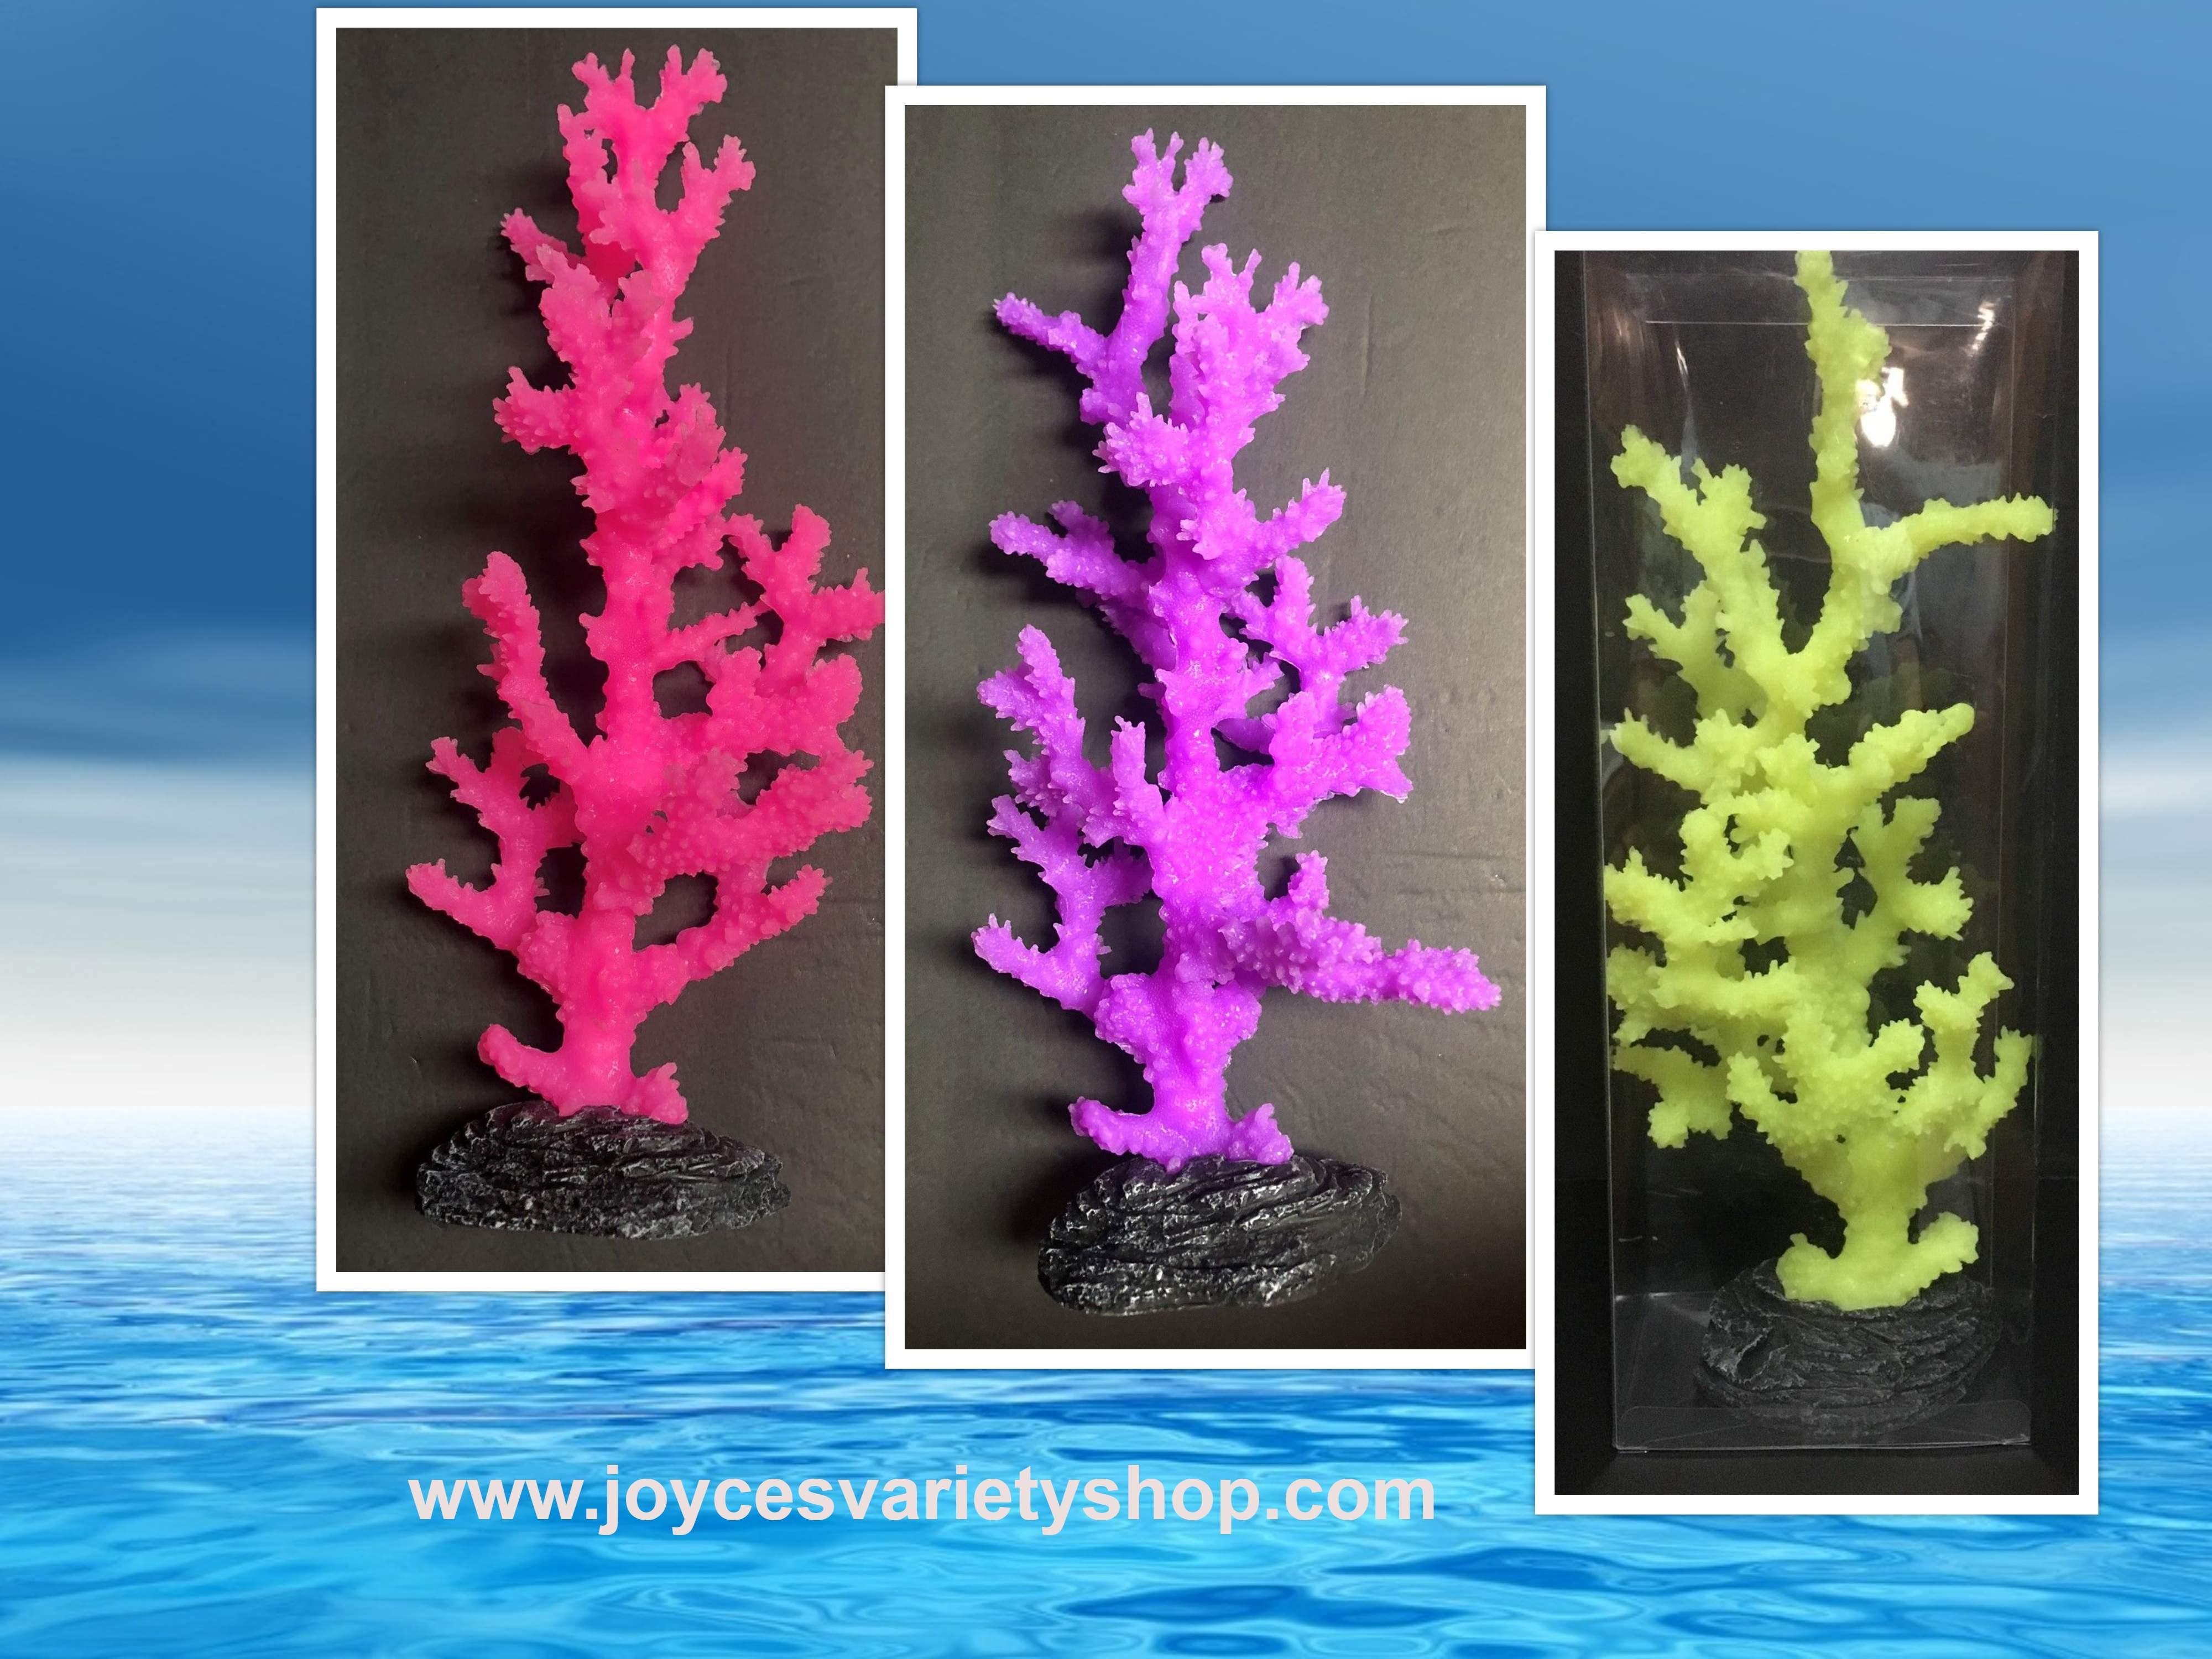 "Sporn Large Sinularia Coral Aquarium Decor 12"" x 4"" Variety of Colors"